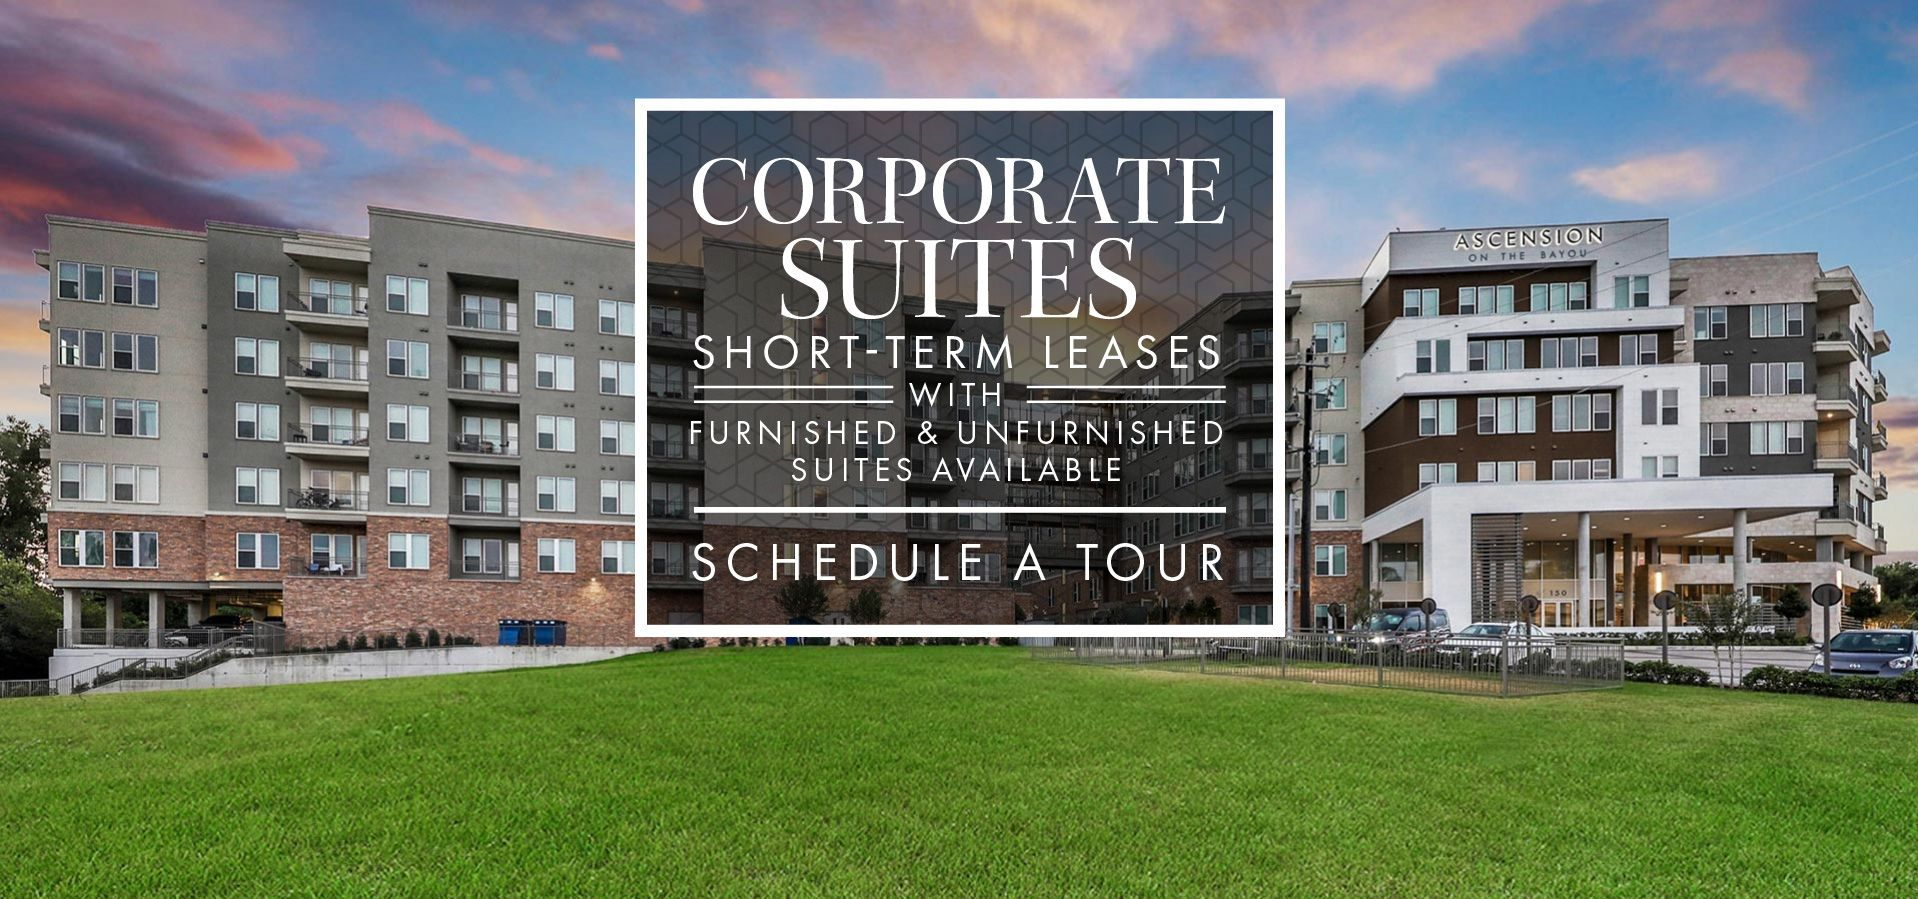 Corporate Suites - Short-Term Leases | Schedule a Tour